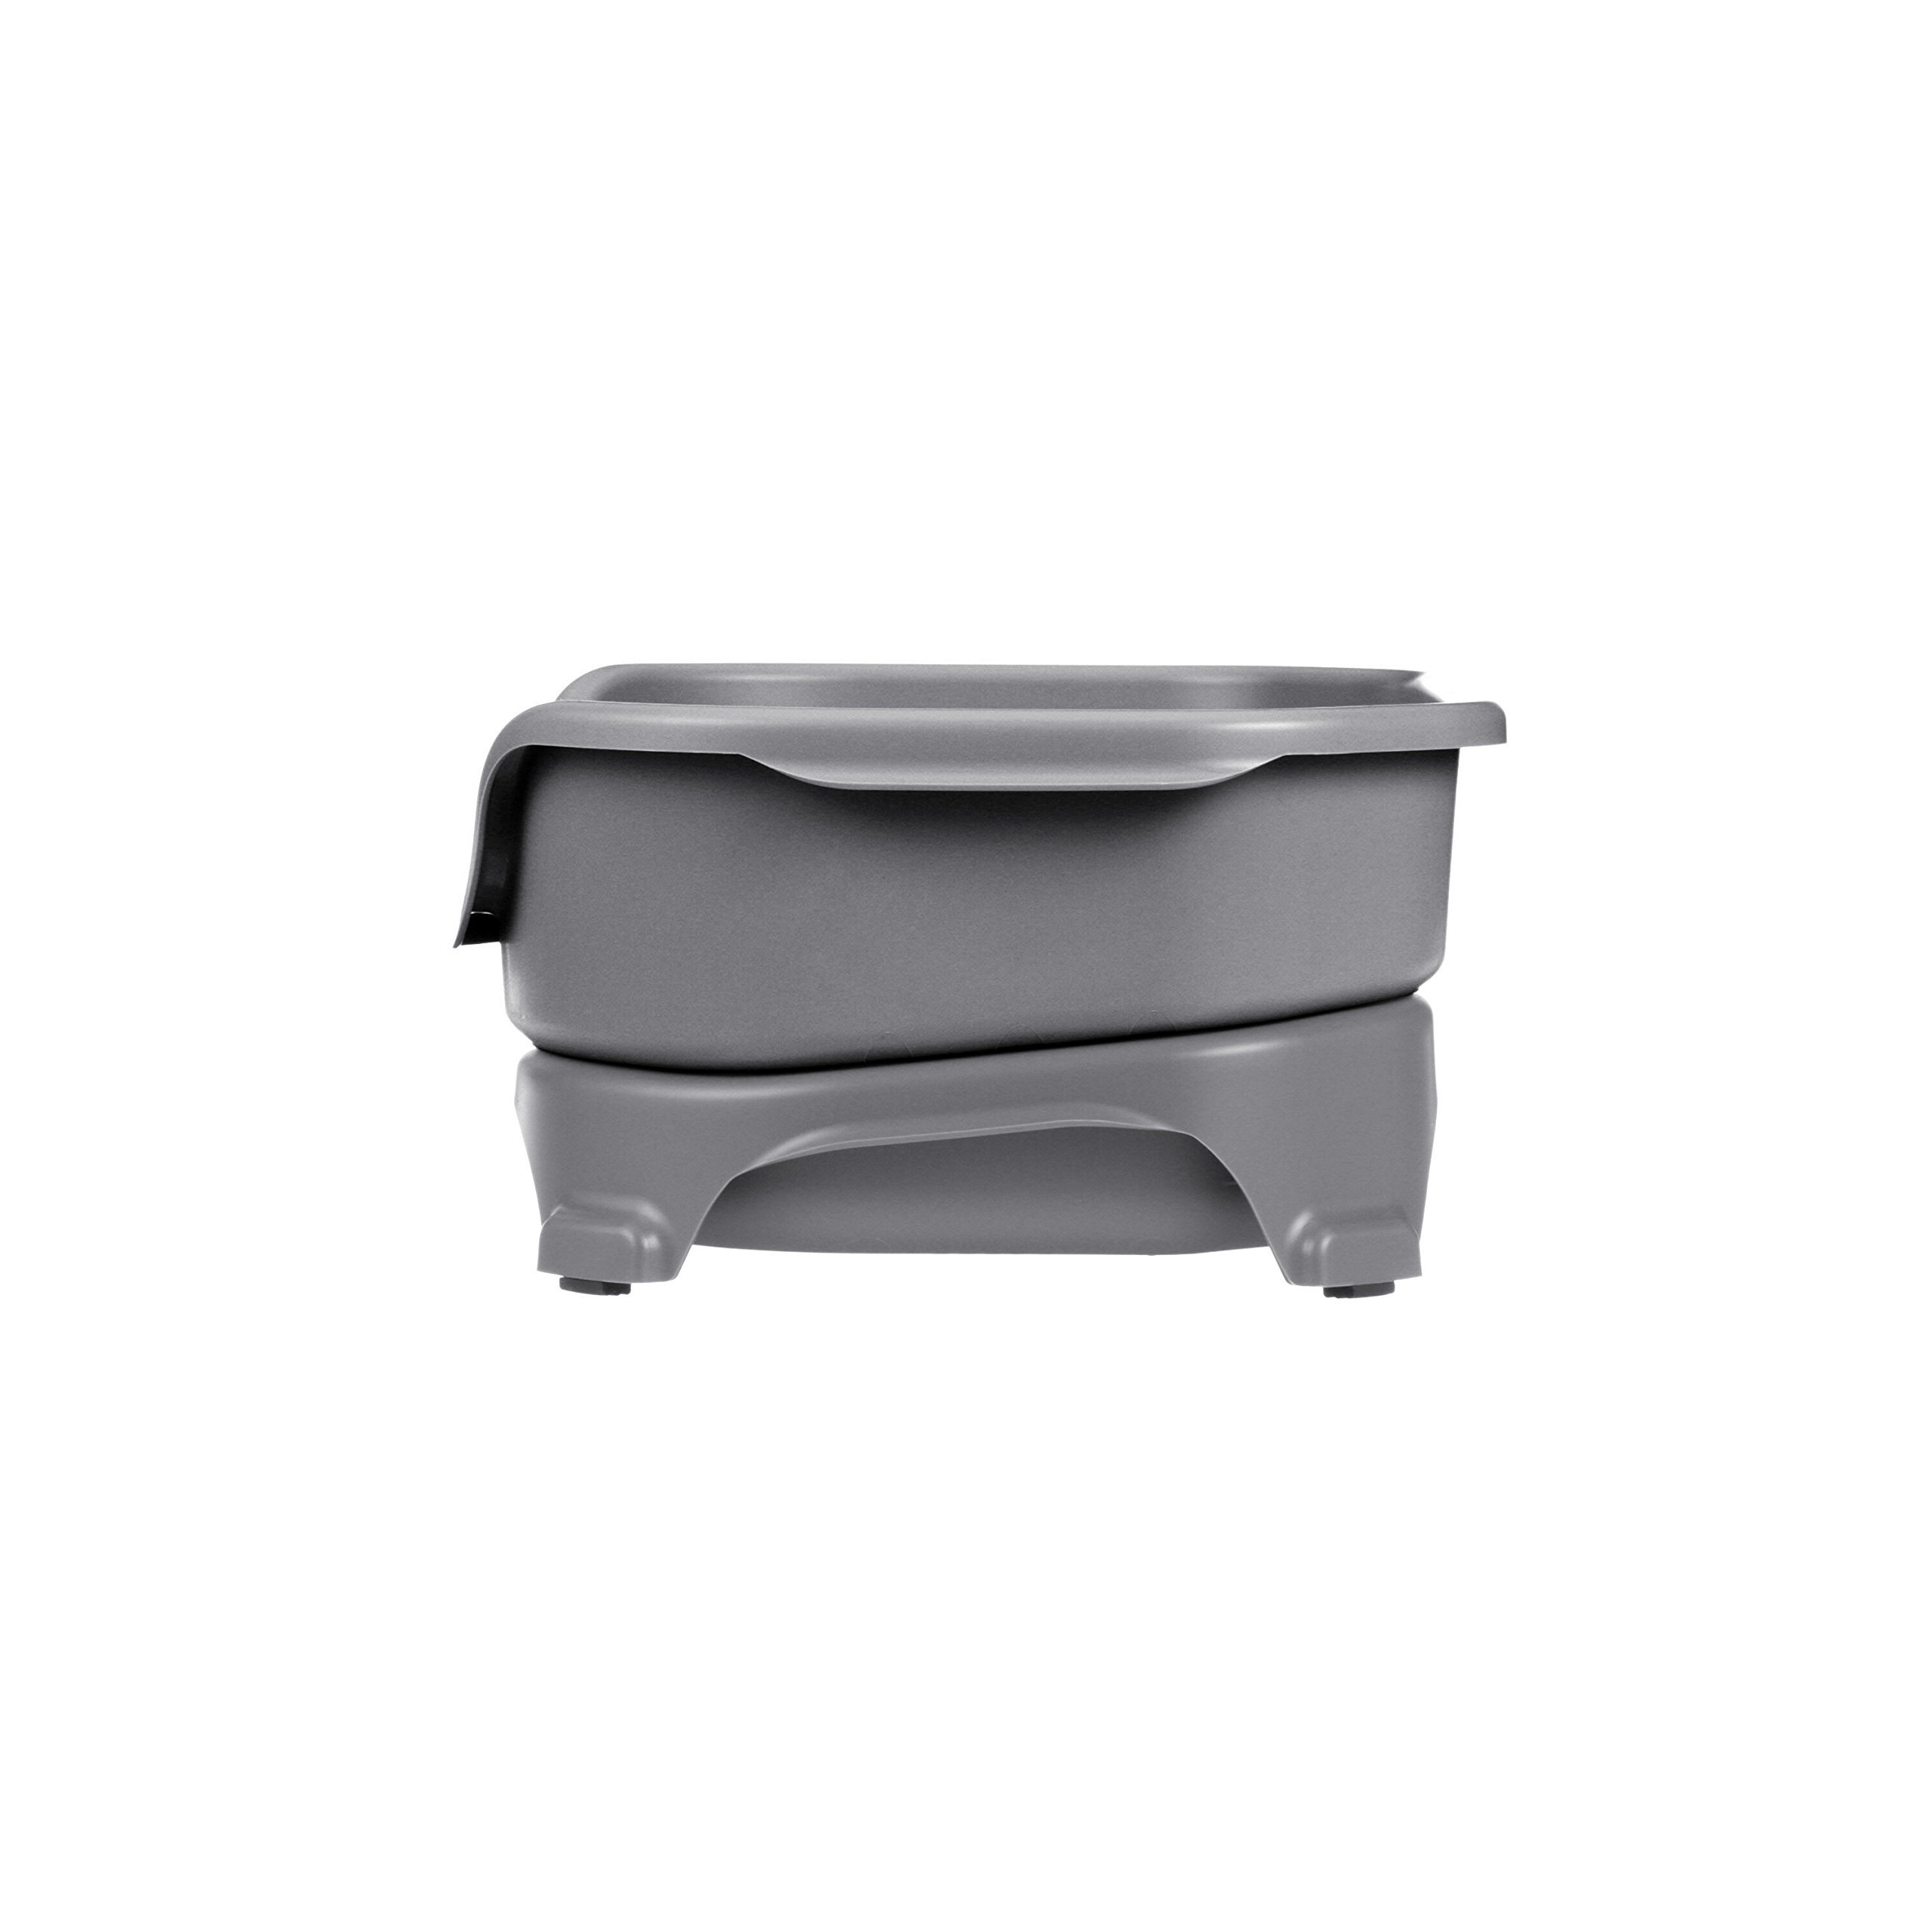 Neater Feeder Express (Small Dog, Gunmetal) - With Stainless Steel Dog Bowls and Mess Proof Pet Feeder by Neater Feeder (Image #4)